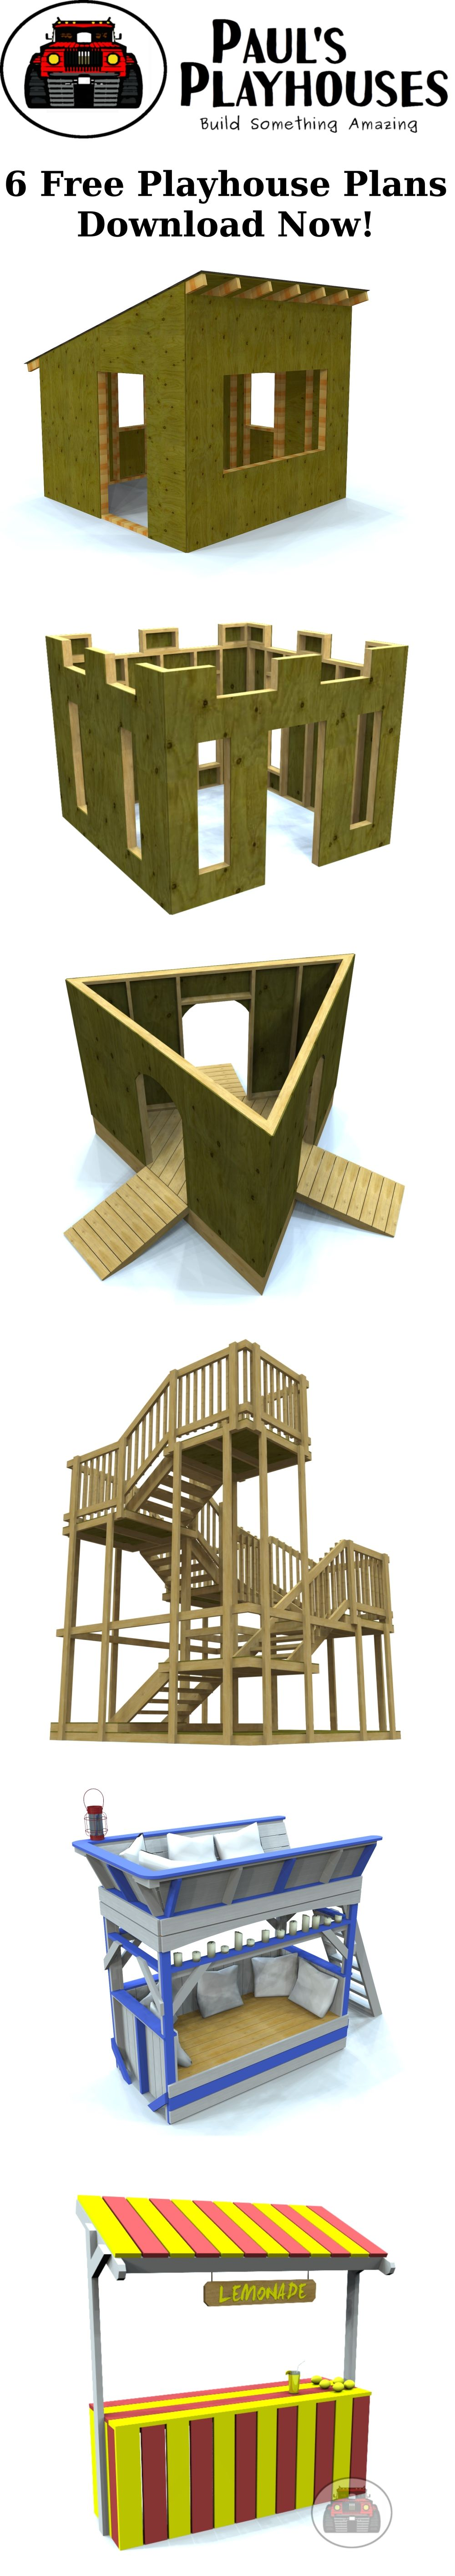 six free playhouses and structures you can download now and start